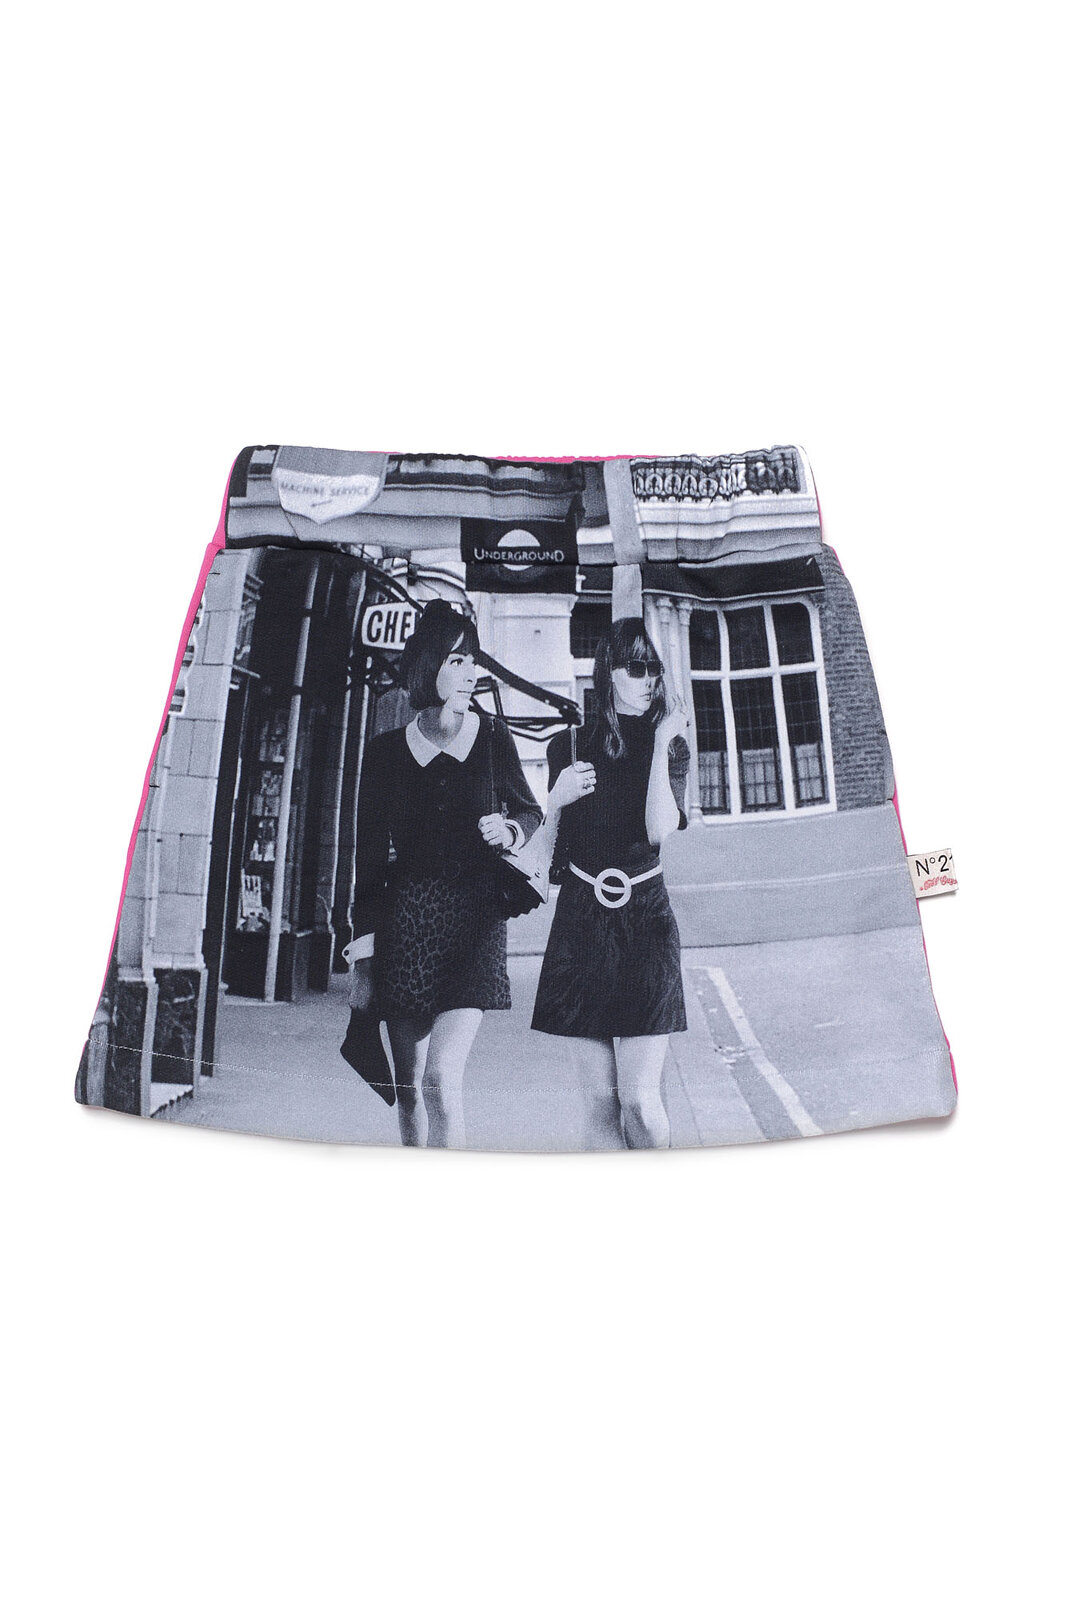 Skirt - N21 Junior